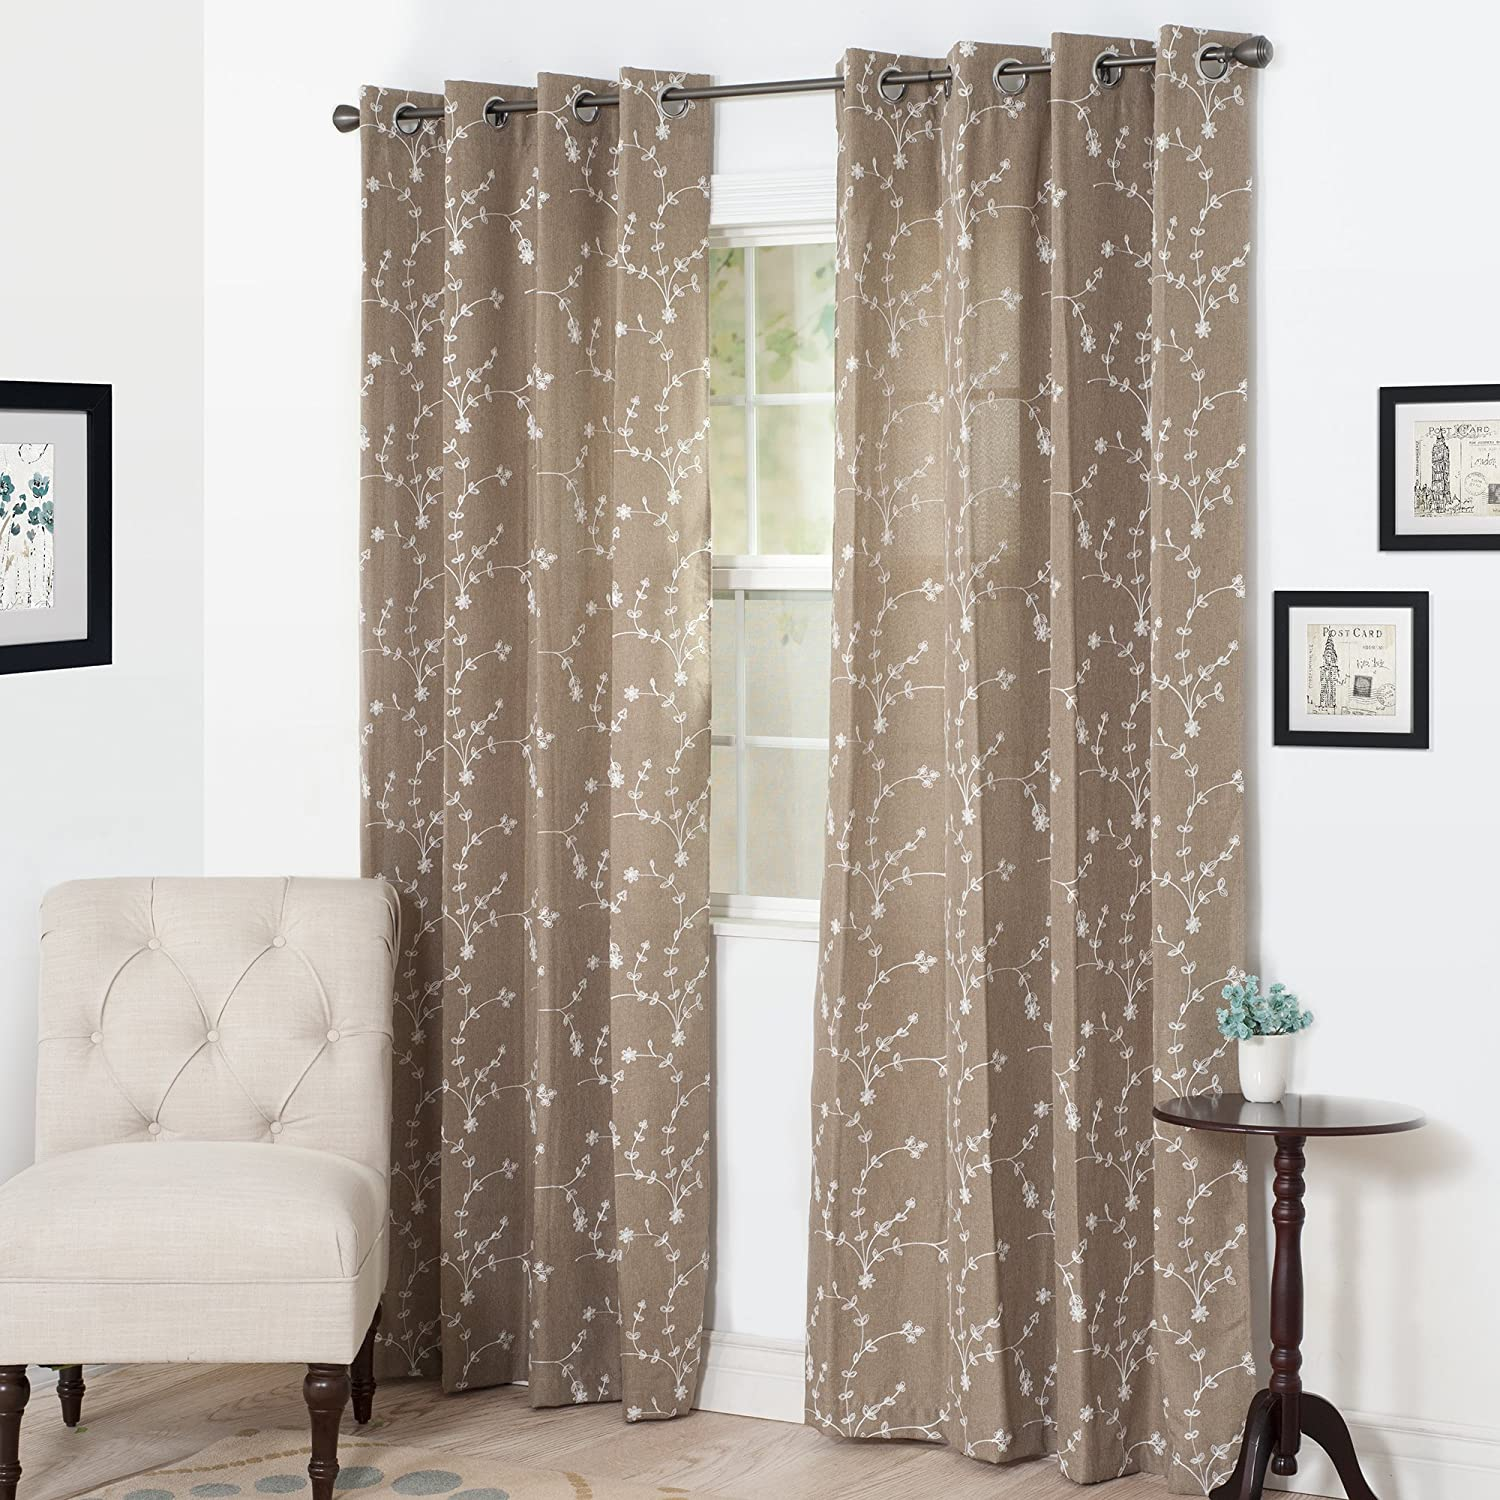 Semi Sheer Grommet Style Curtains - Floral Embroidered Pattern Window Curtain Panel